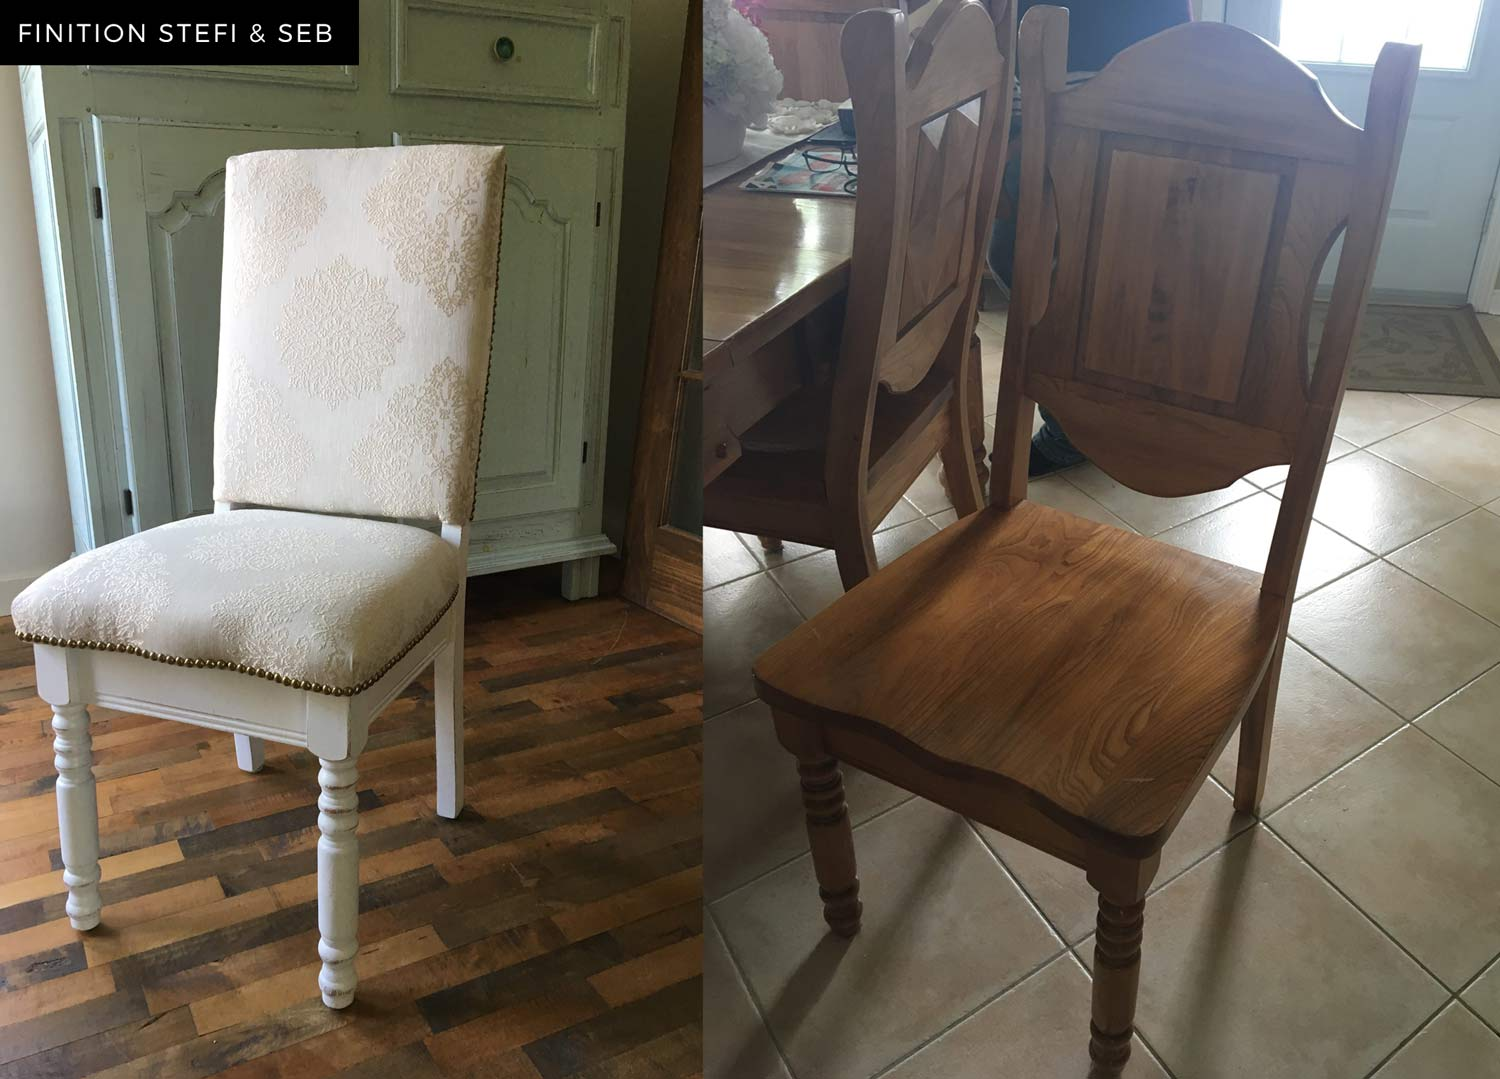 Finition et Rembourrage de chaise antique Montreal